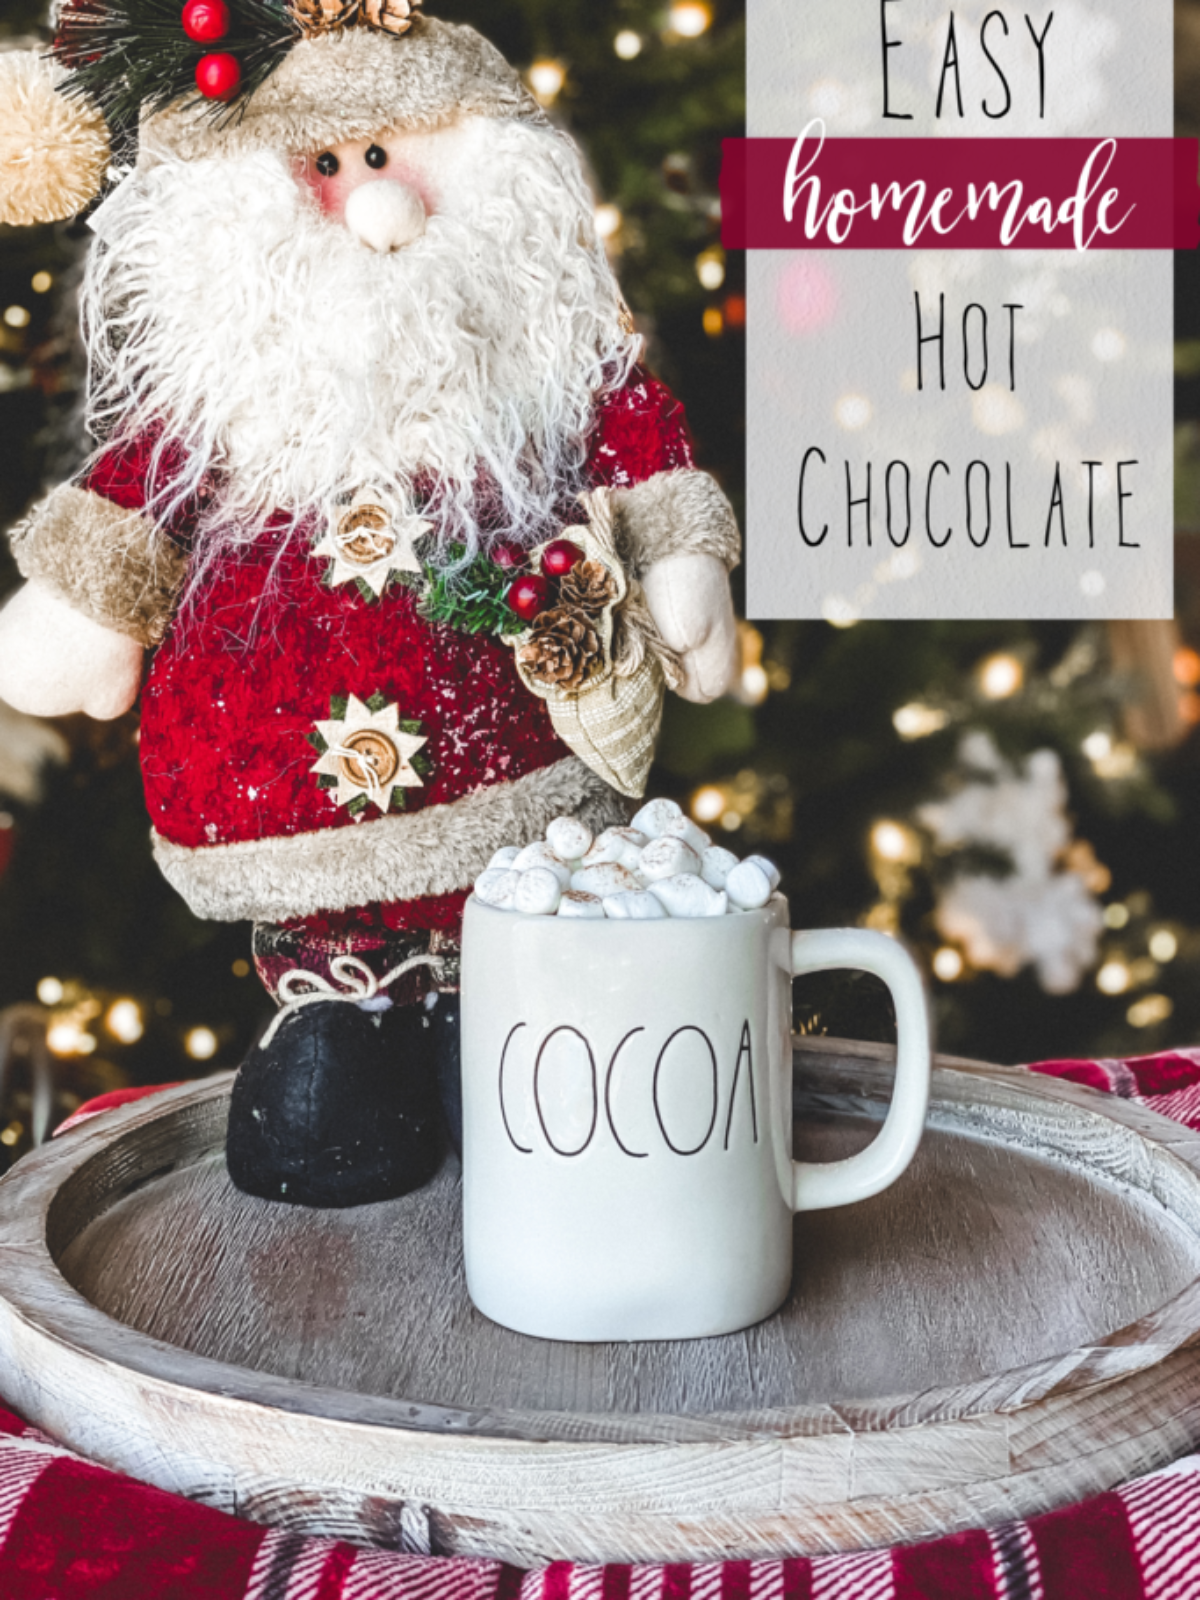 easy simple delicious yummy homemade crockpot hot chocolate recipe